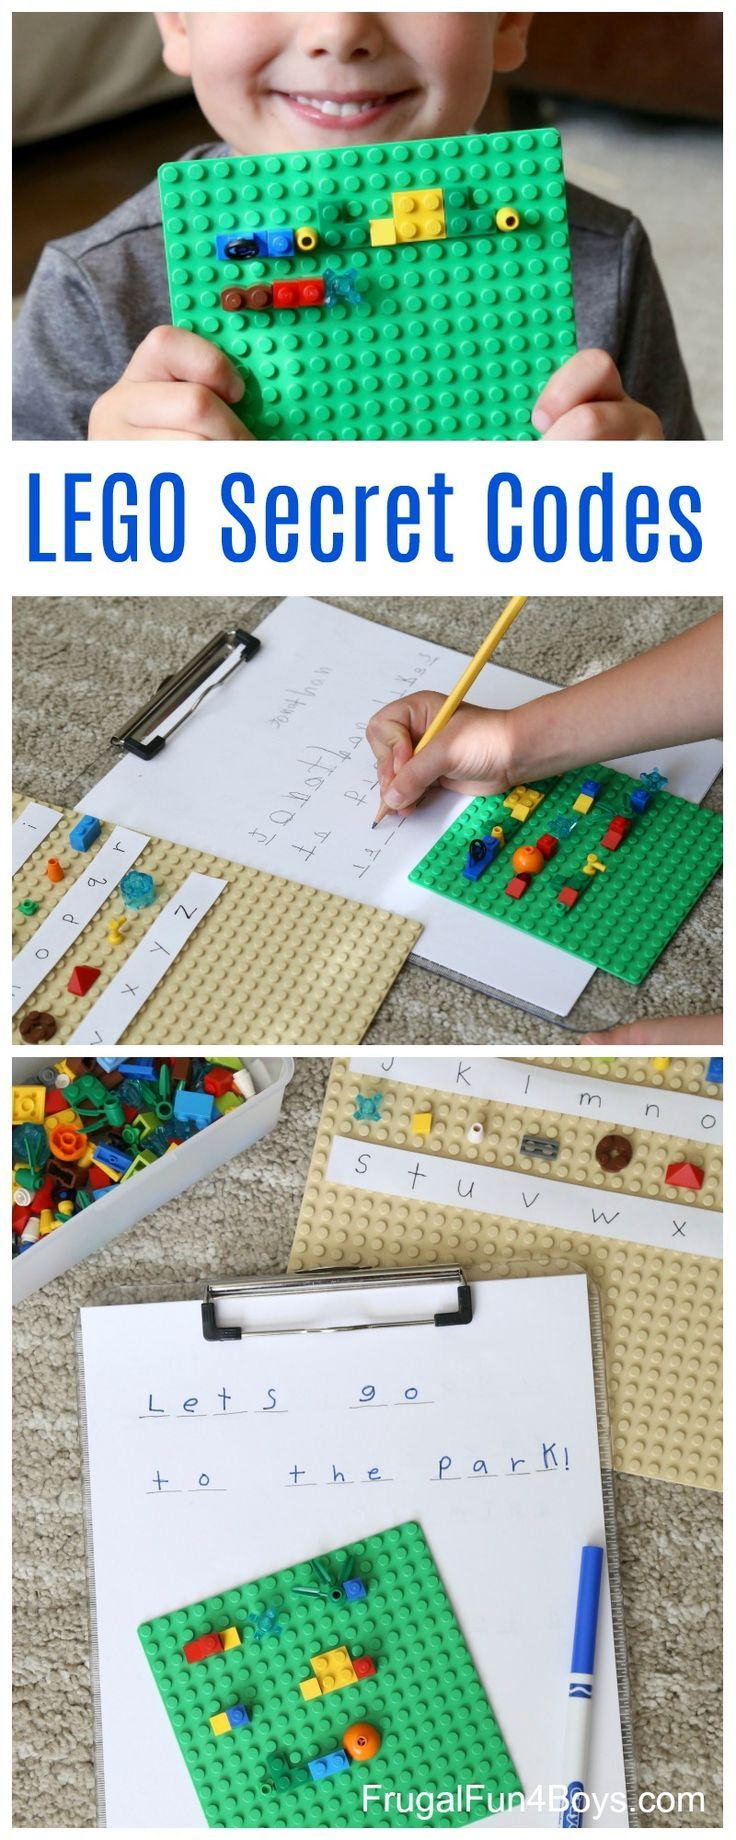 LEGO secret codes! Write coded messages with LEGO bricks. Fun literacy activity for kids!